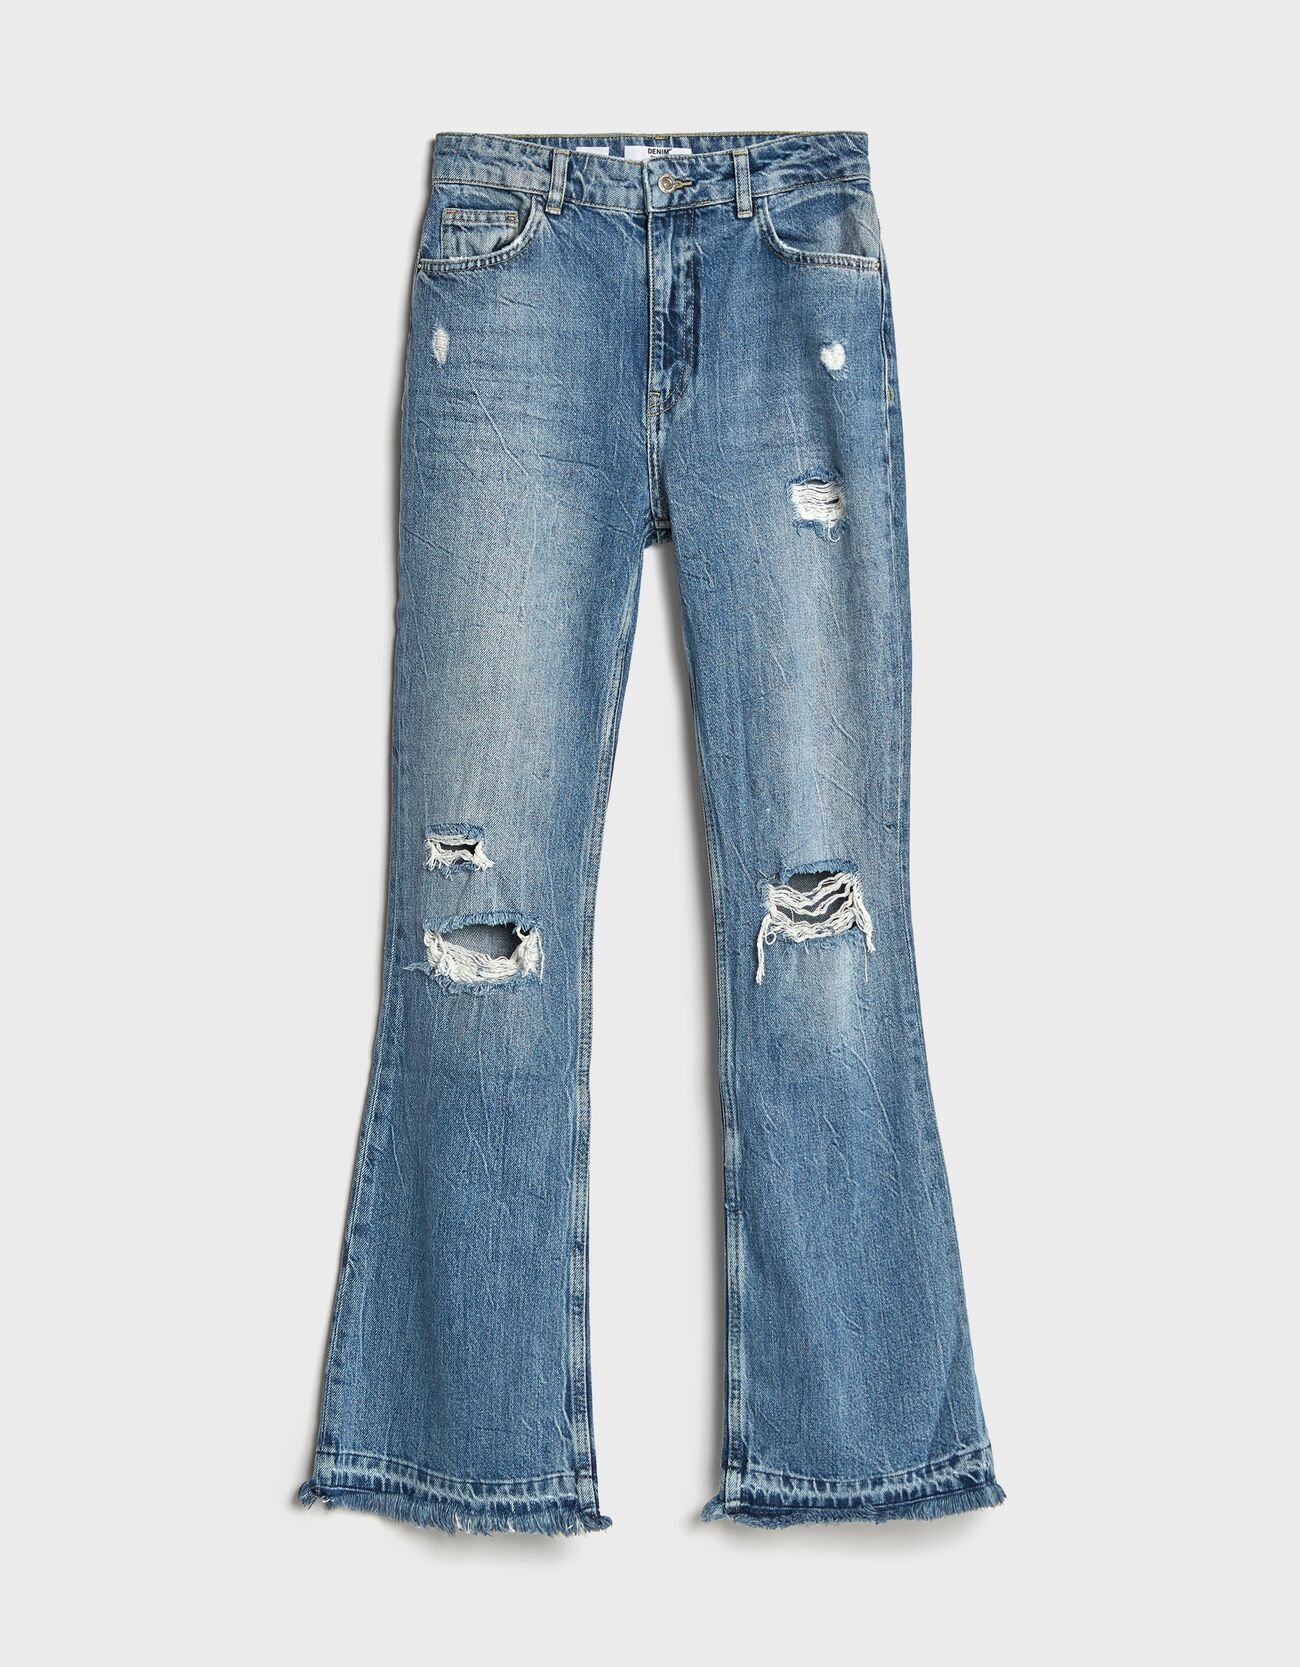 Jeans flare rotos.